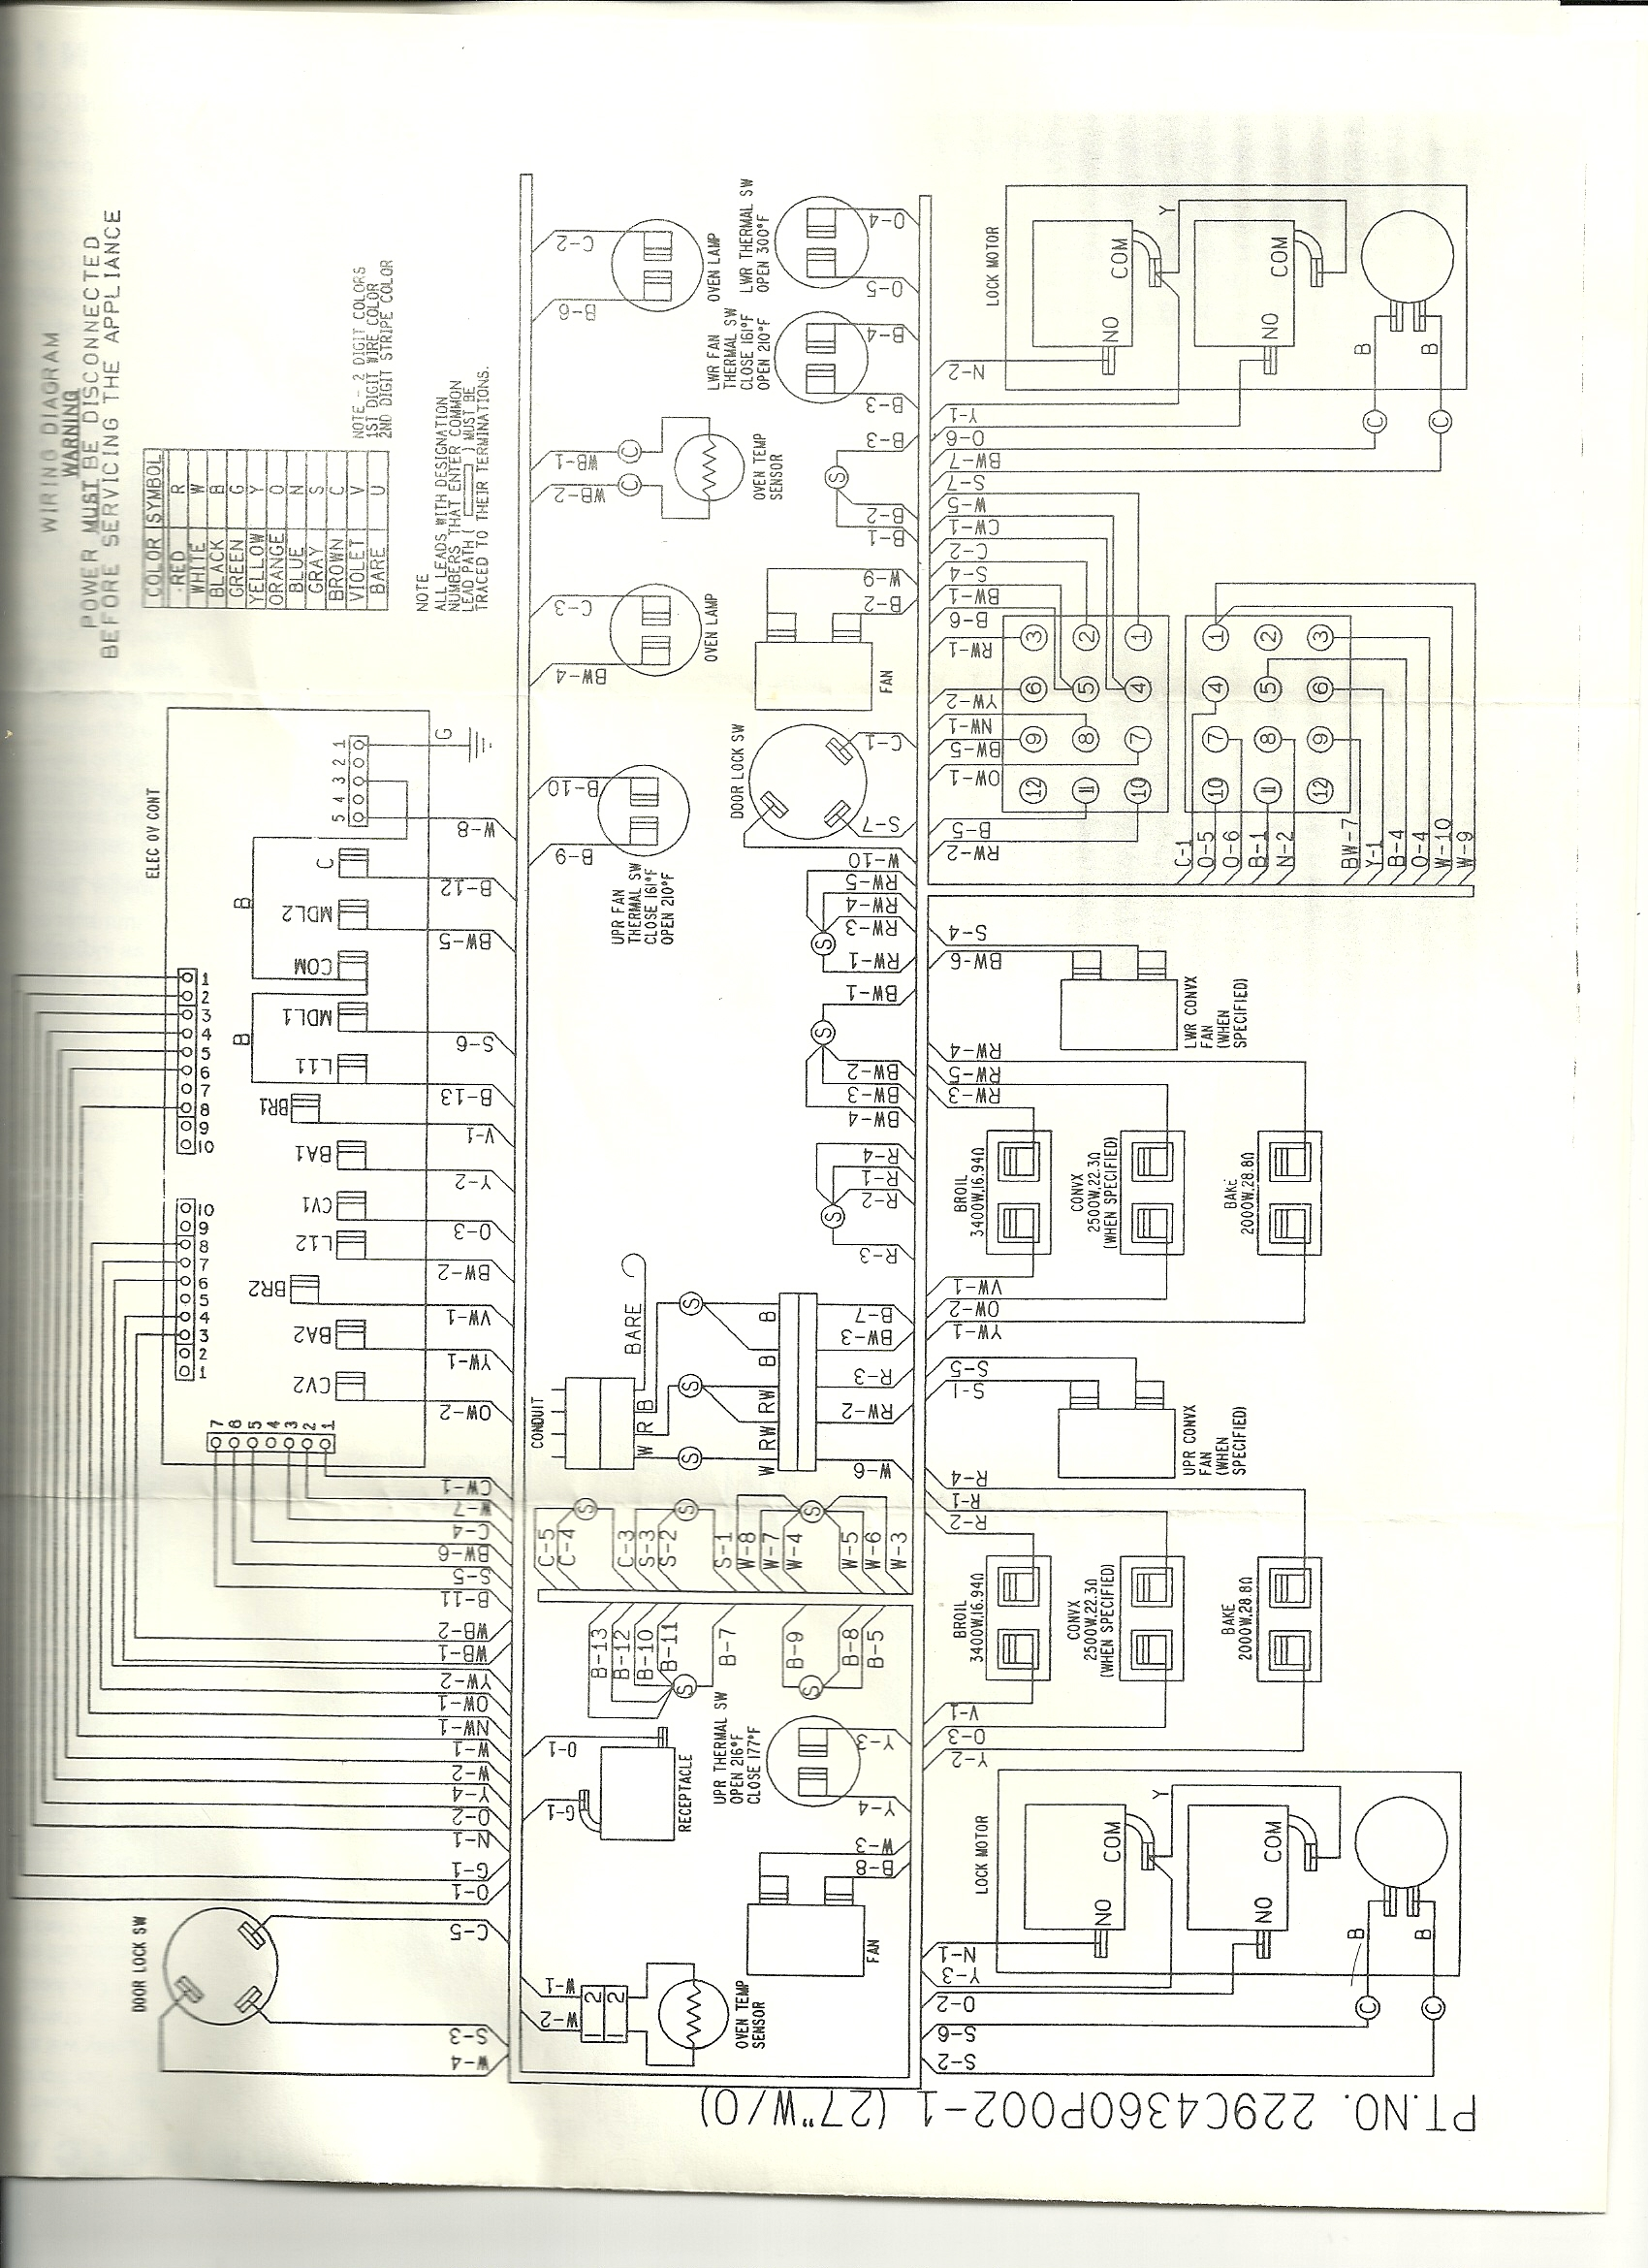 Wiring Ge Wall Oven Guide And Troubleshooting Of Diagram Diagrams For Timers Wire Library Rh 59 Codingcommunity De Clock Reset